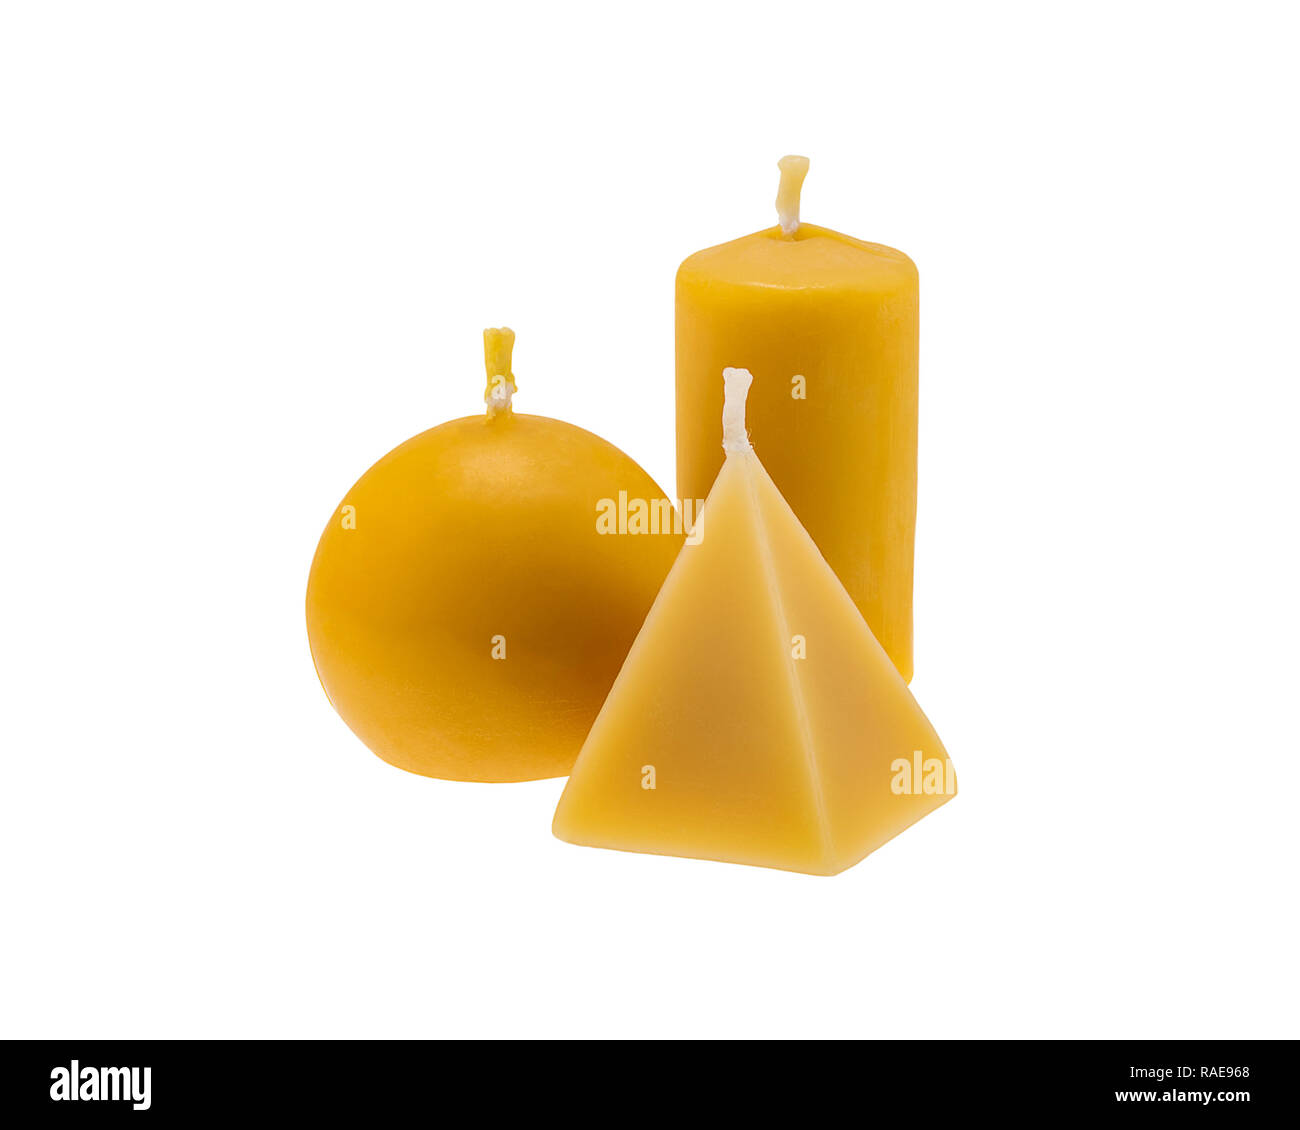 Three golden beeswax candles isolated on white background - Stock Image